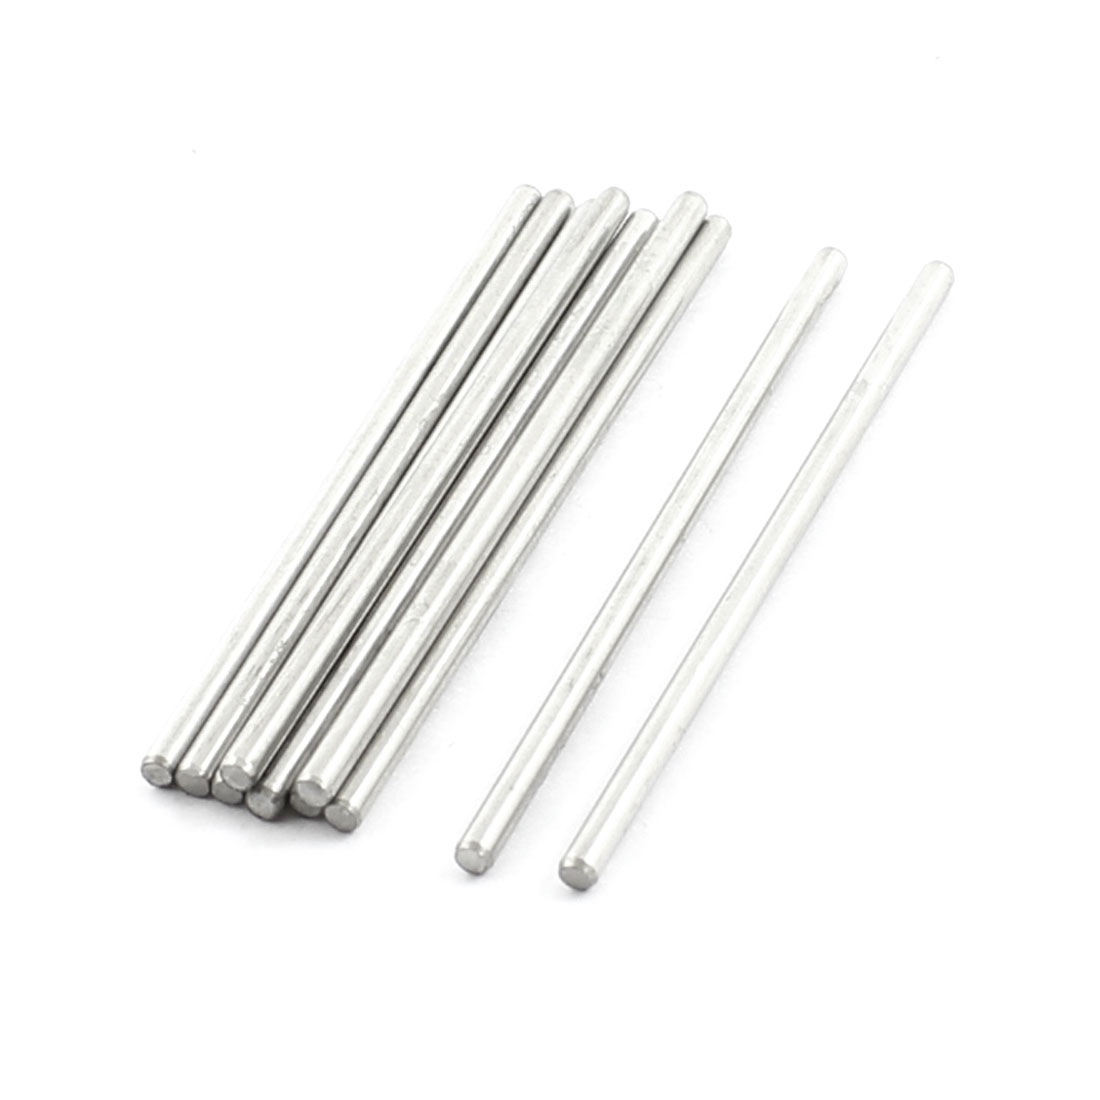 "10Pcs 2mm Diameter Stainless Steel Motion Axle Circular Round Rod Bar 2"" Long"